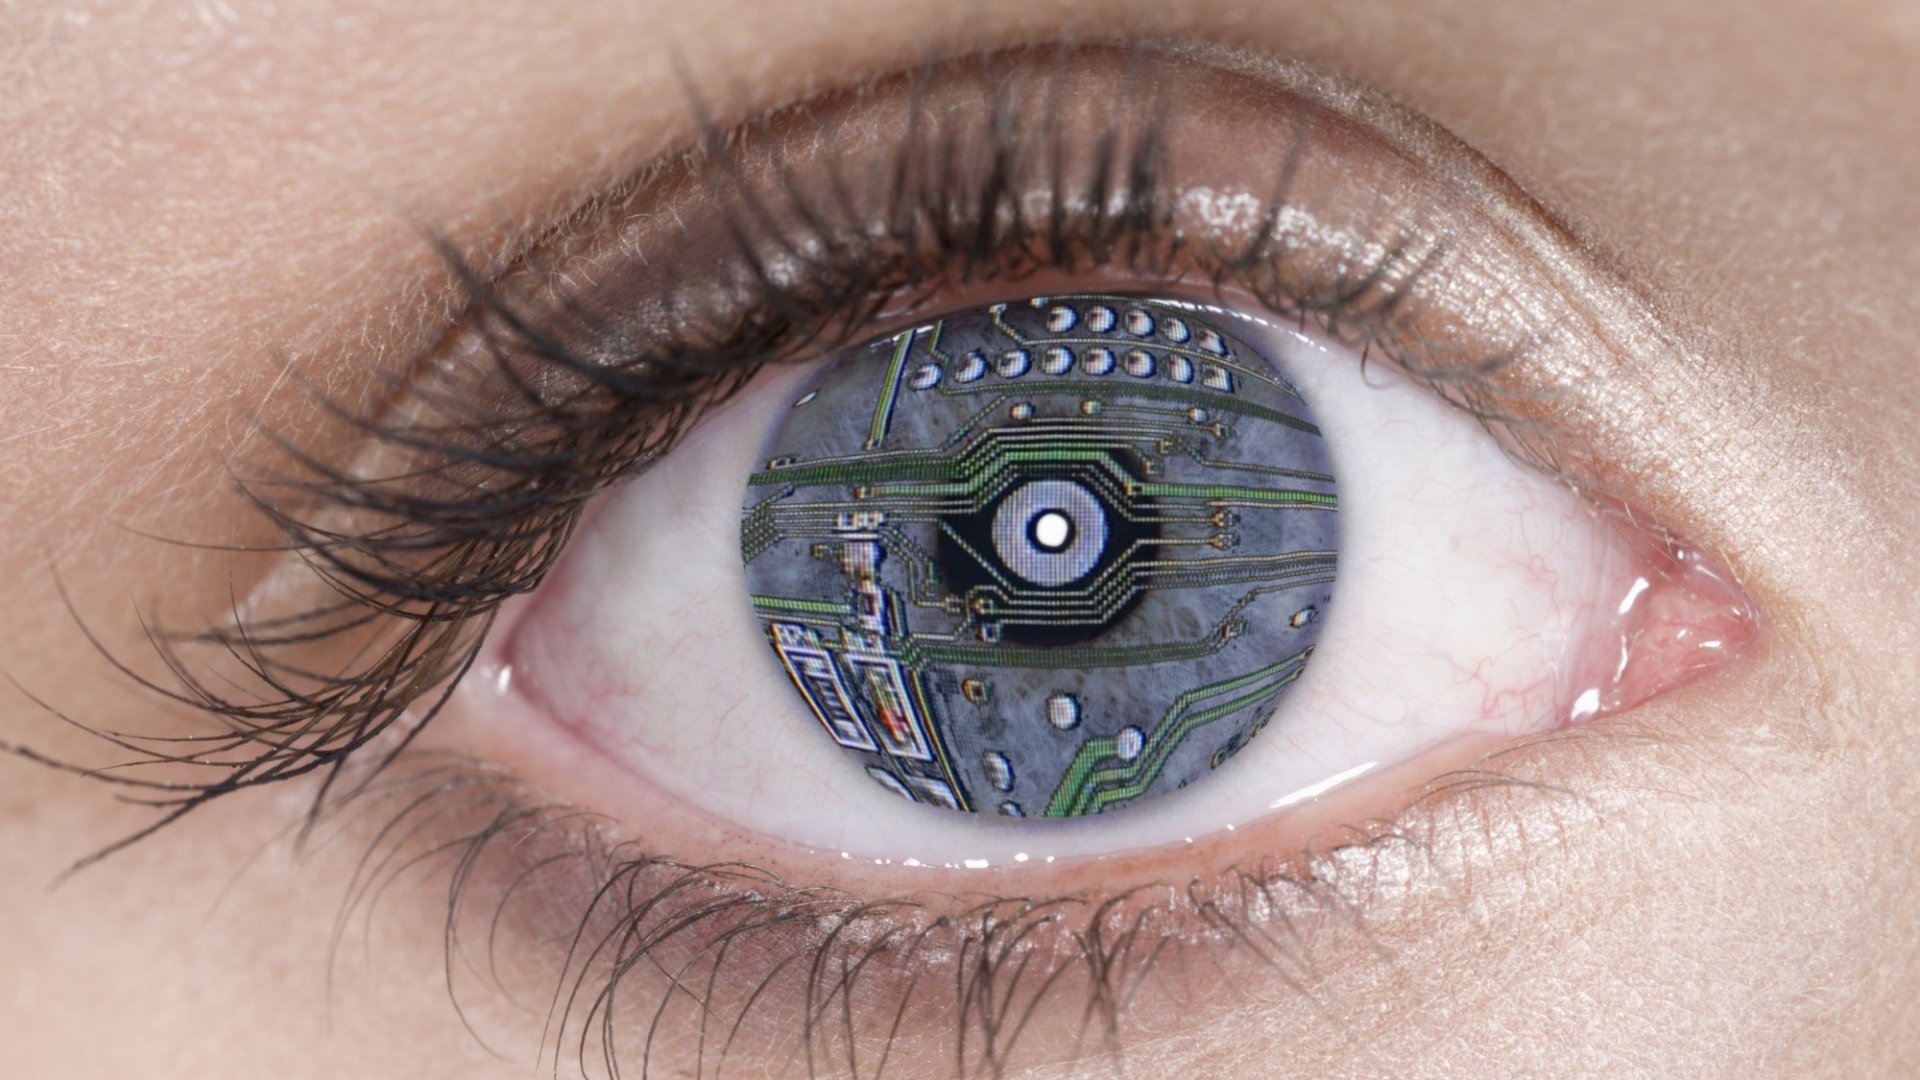 New Embedded Electronics Promise Better Health